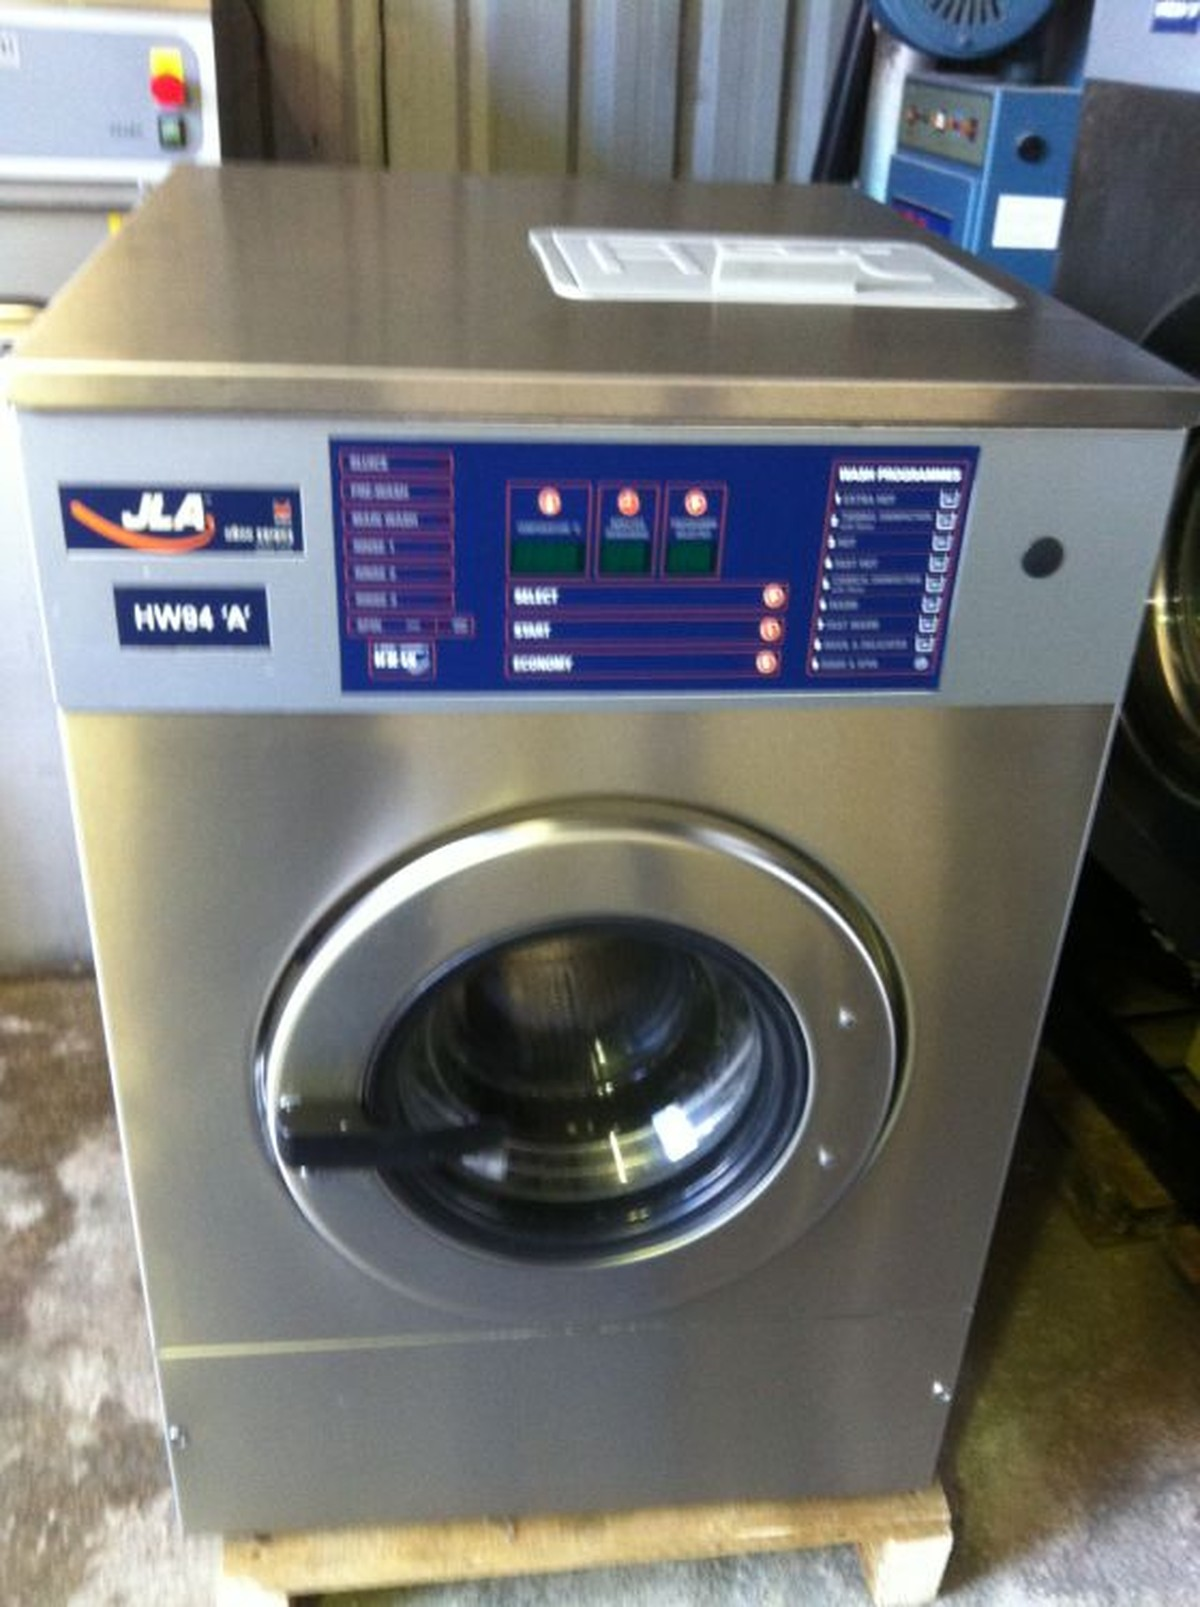 Ipso Washing Machine Wiring Diagram Schematic Diagrams Front Loader Parts Secondhand Laundry Equipment Electrical